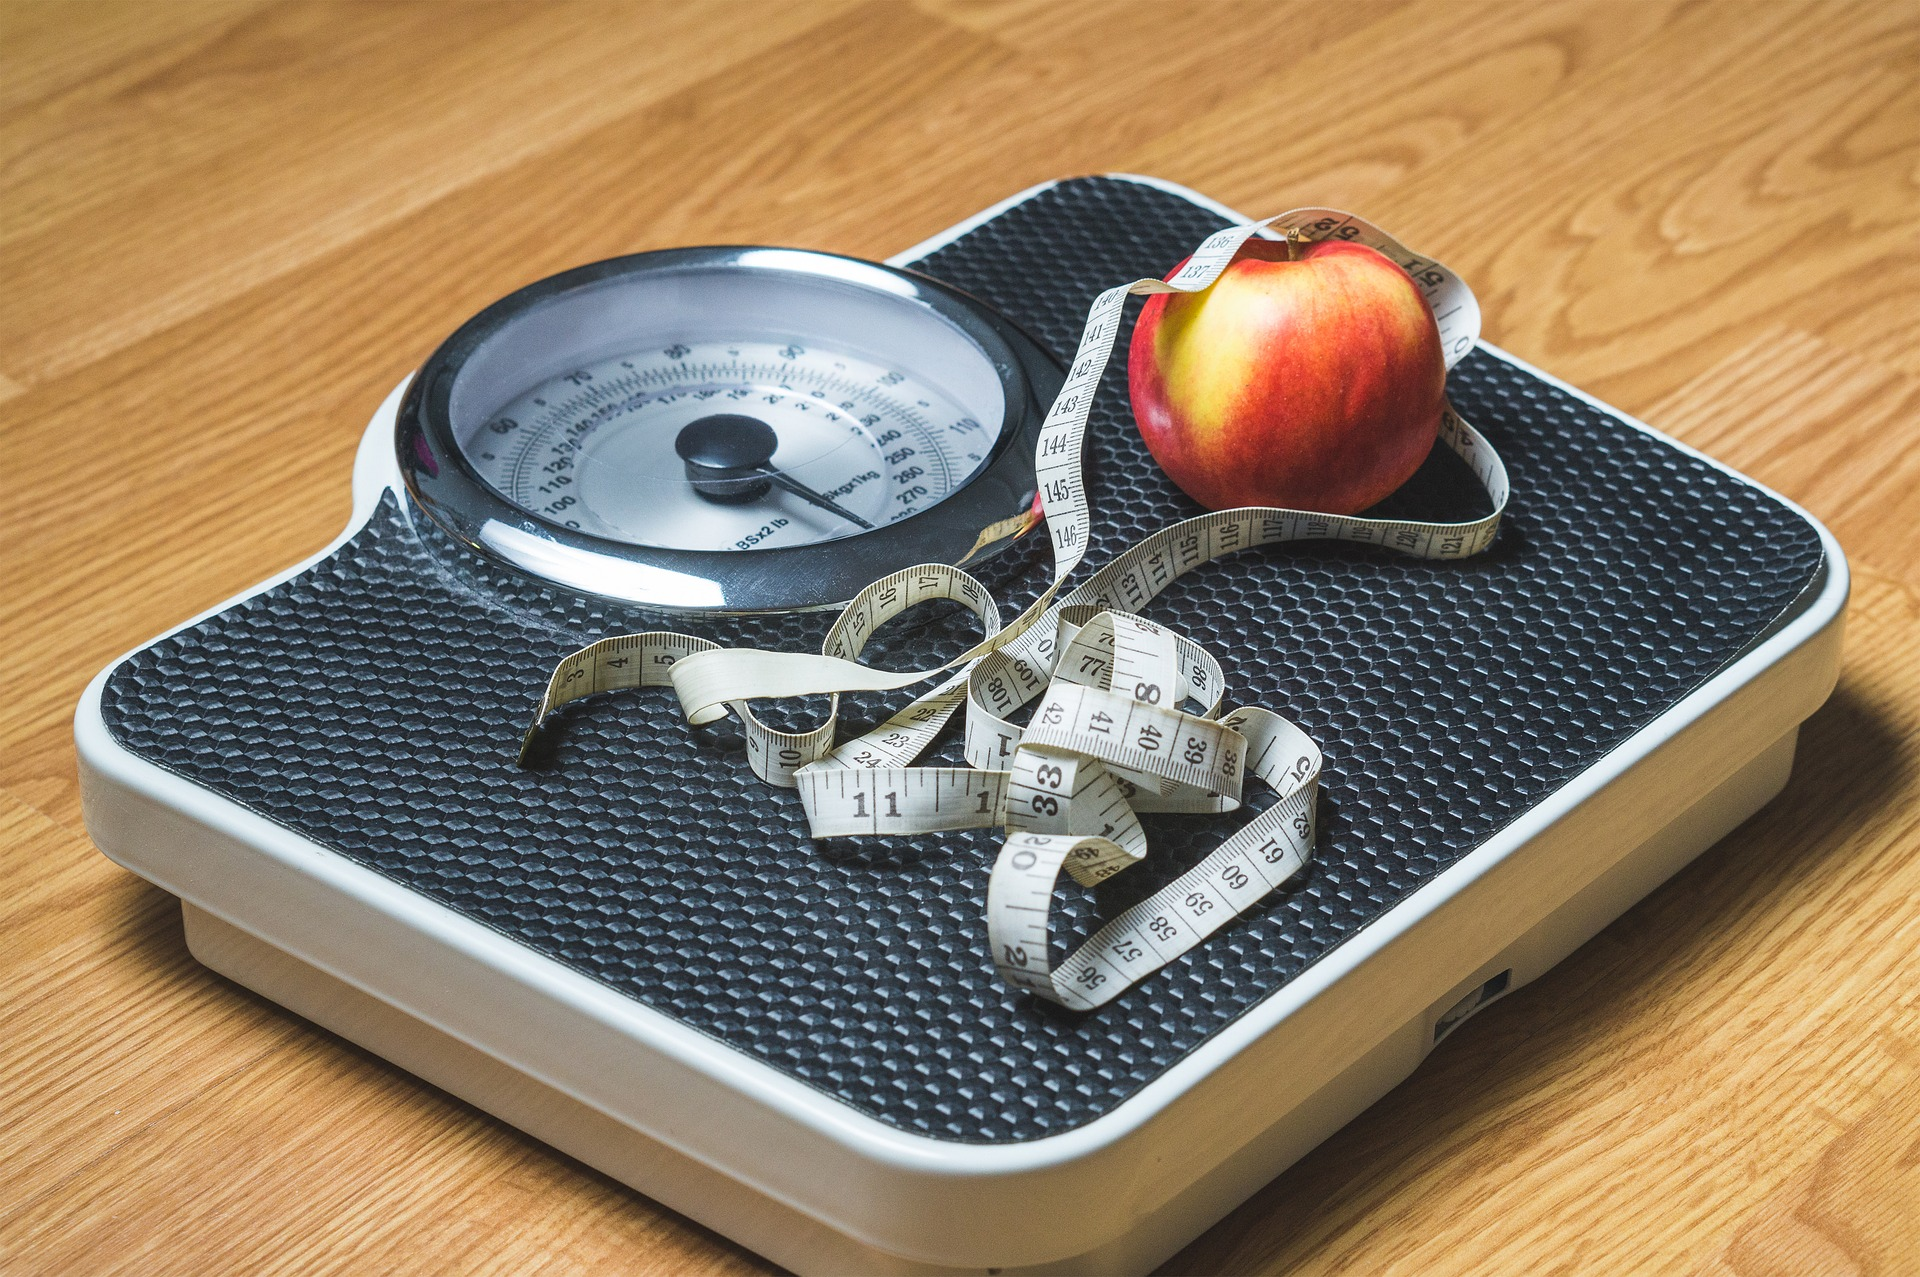 A scale, measuring tape and an apple. Image credit: Pixabay user, TeroVesalainen